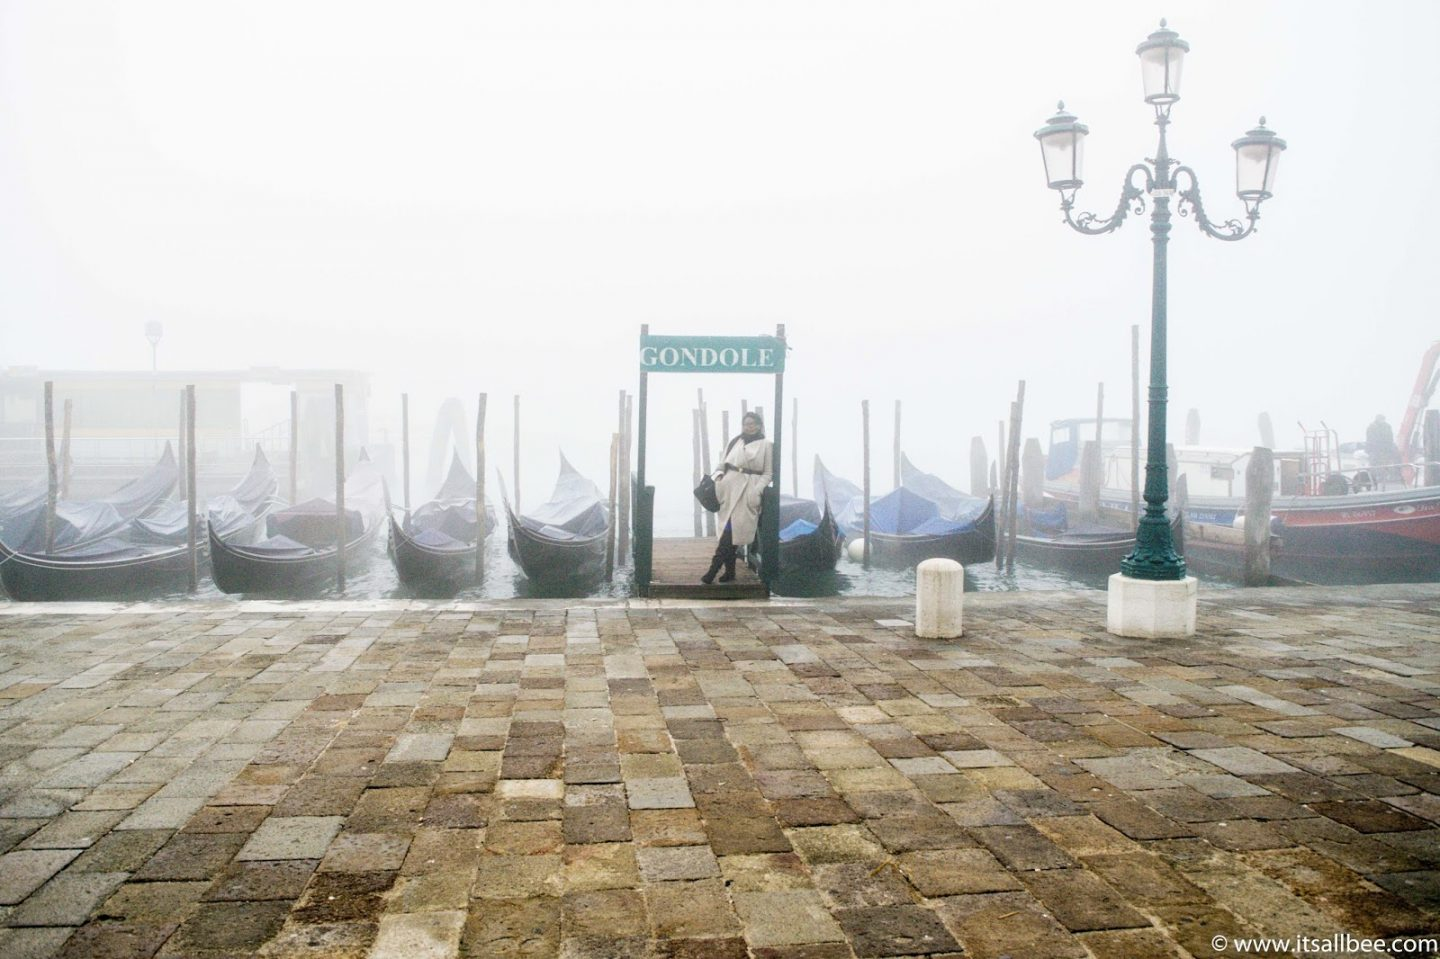 Venice packing list for winter - What to wear in Venice Italy winter. Tips with planing Venice winter outfit, venice winter fashion and what venice clothes to consider for a trip to Italy. #europe - city break winter outfits - Venice Clothing - #italian #winterseason #outfits #packintips #italianculture #travelinvenice #december #january #february